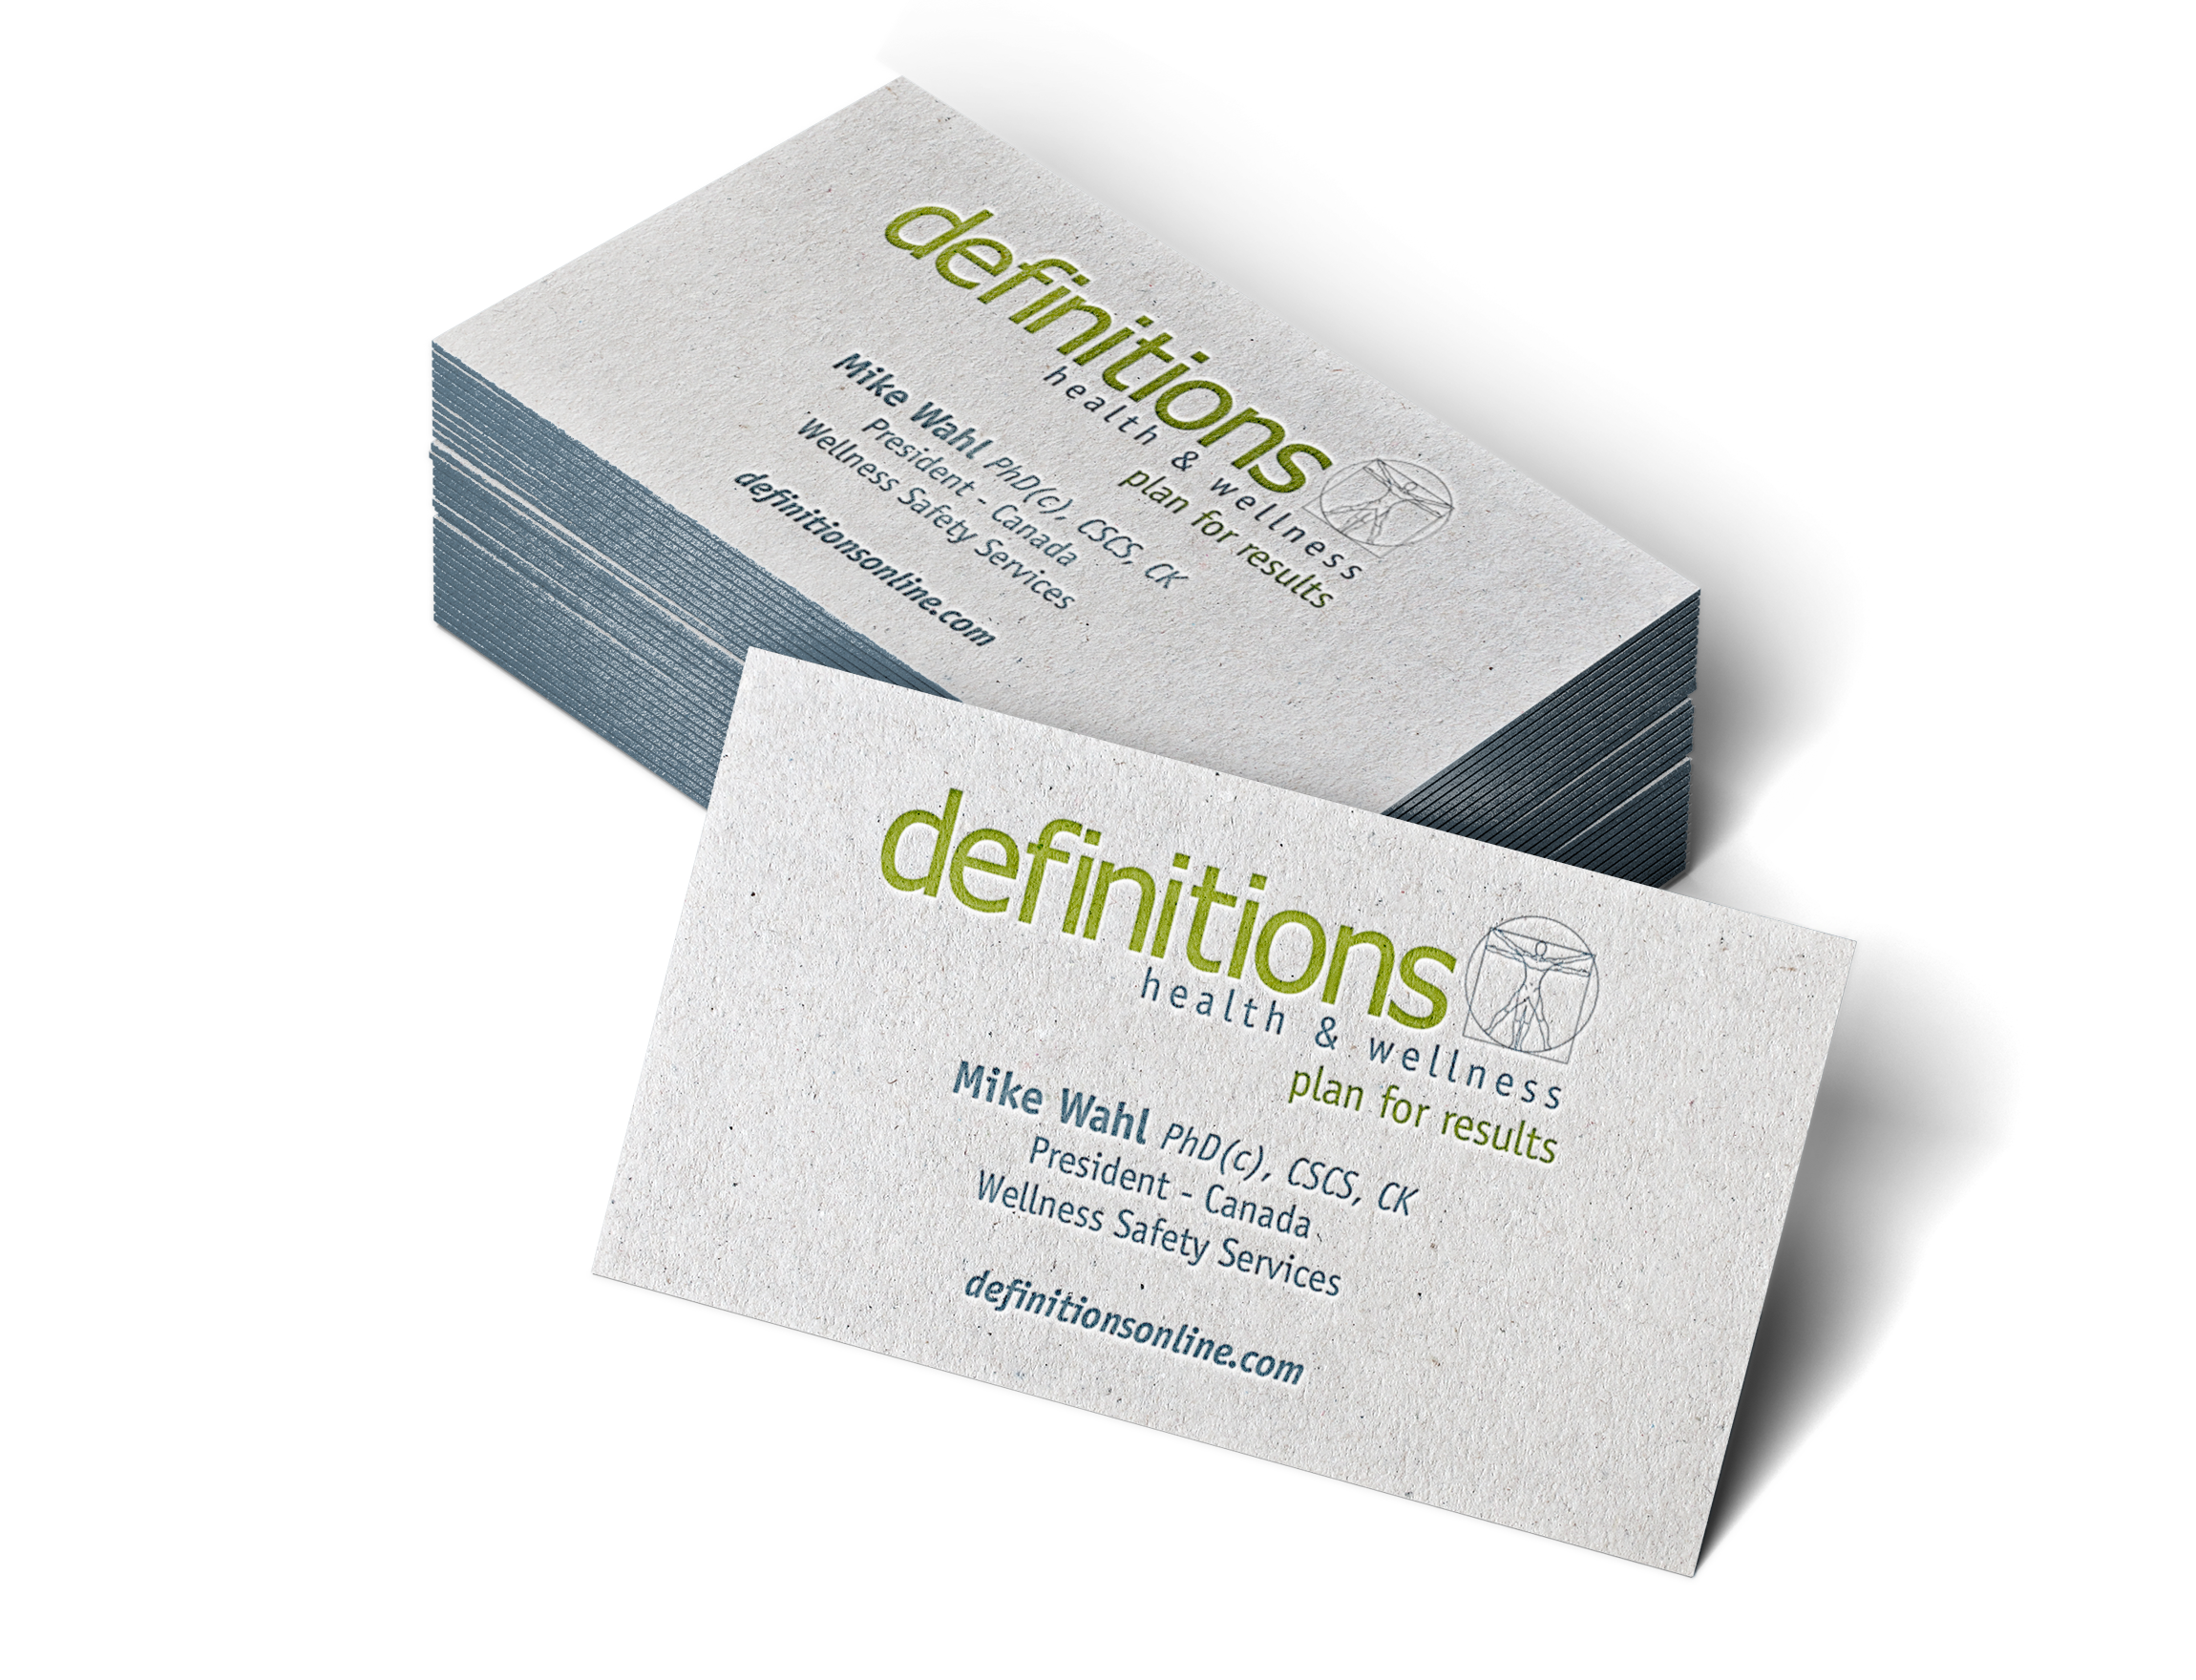 definitions Letterpress Business Cards